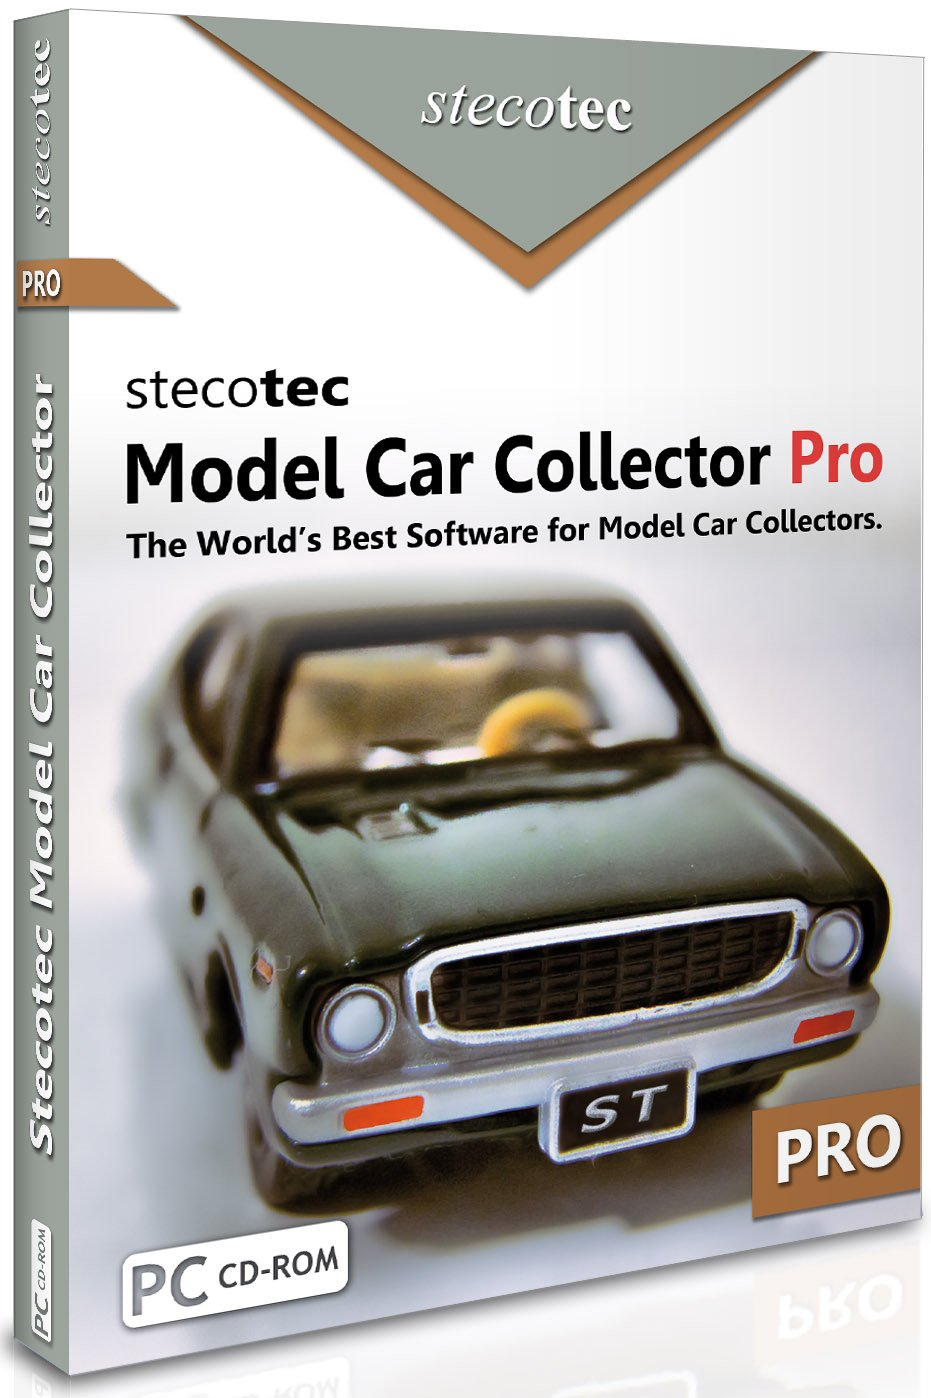 Collecting Software Stecotec Model Car Collector Pro